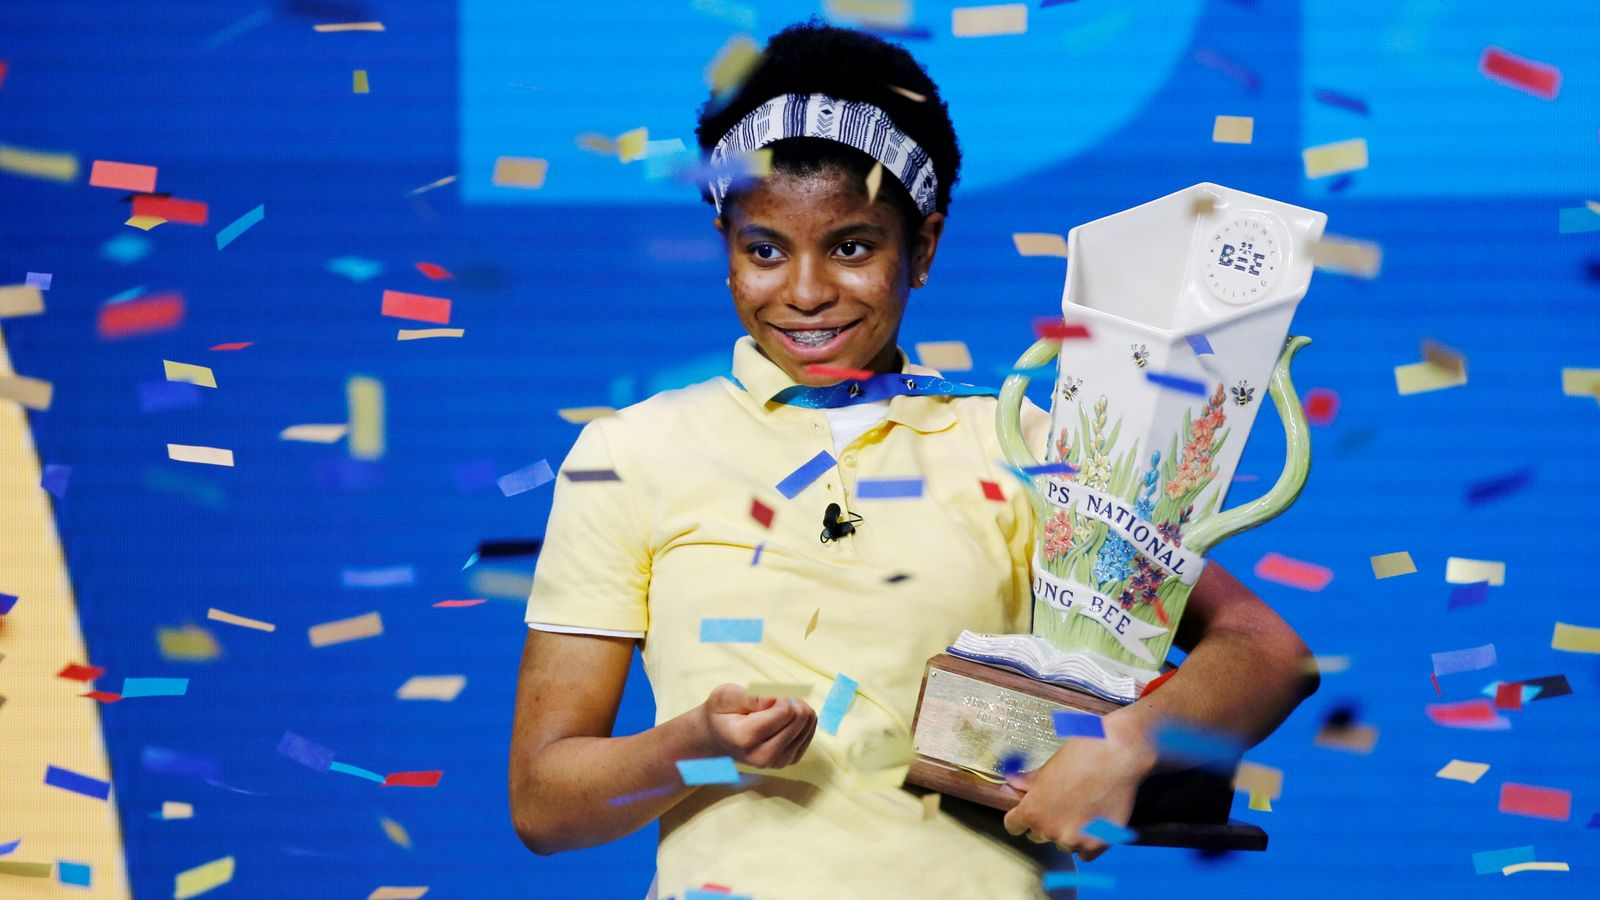 Zaila Avant-garde: Fourteen-year-old makes history to become first African American winner of US Scripps National Spelling Bee